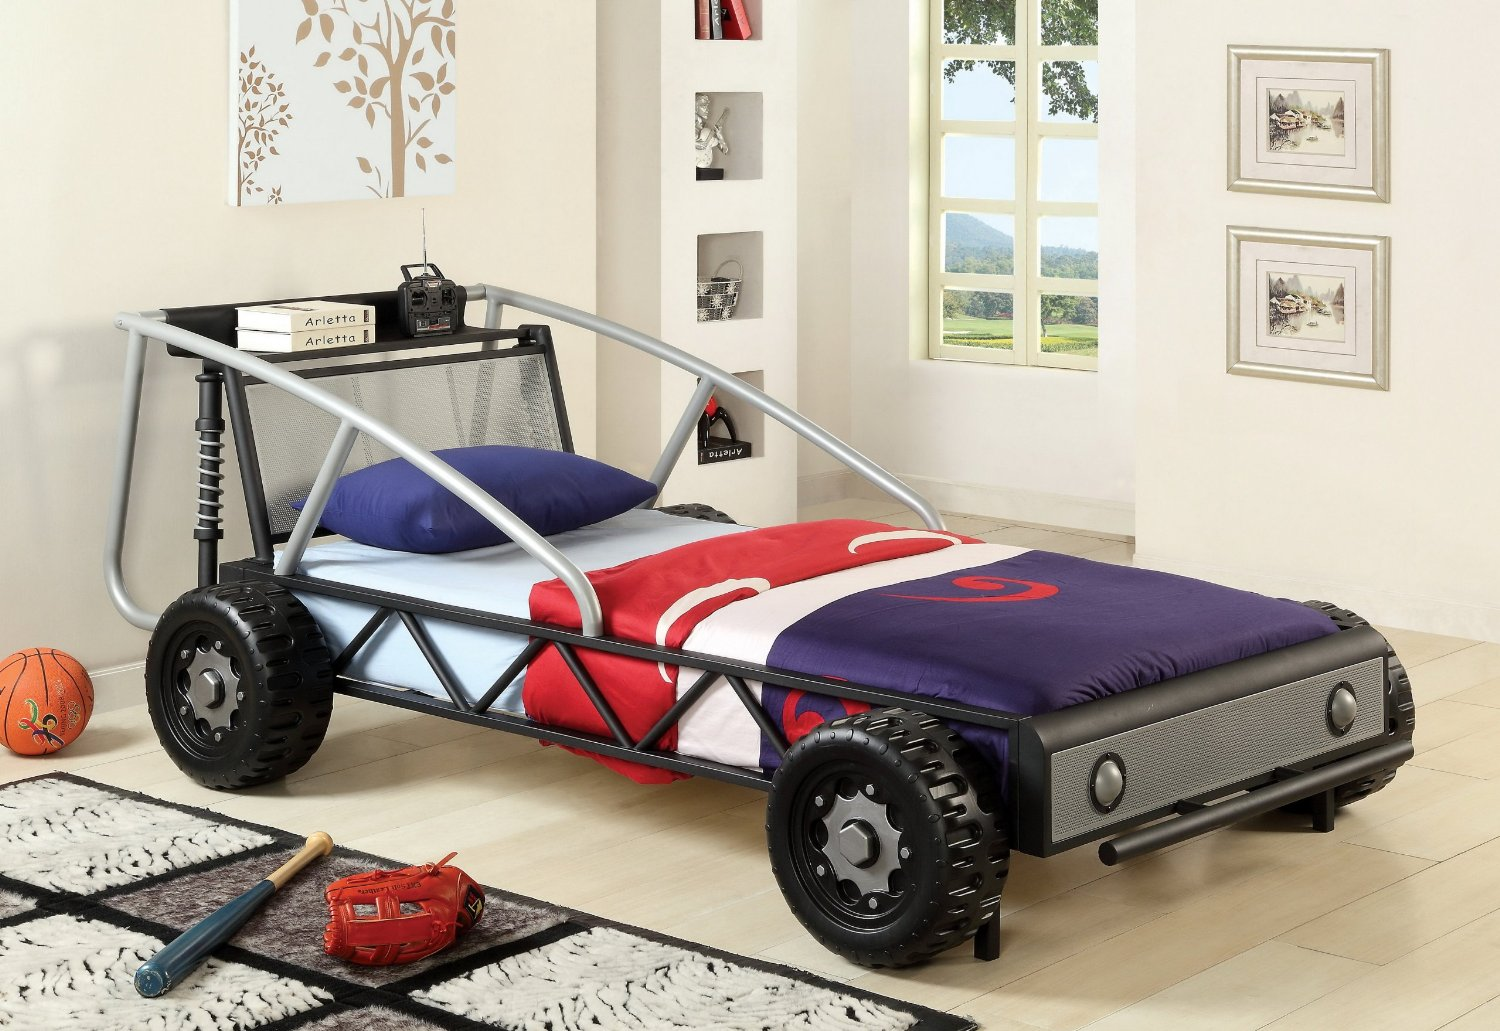 Cool Beds For Boys 15 Awesome Car Inspired Bed Designs For Boys